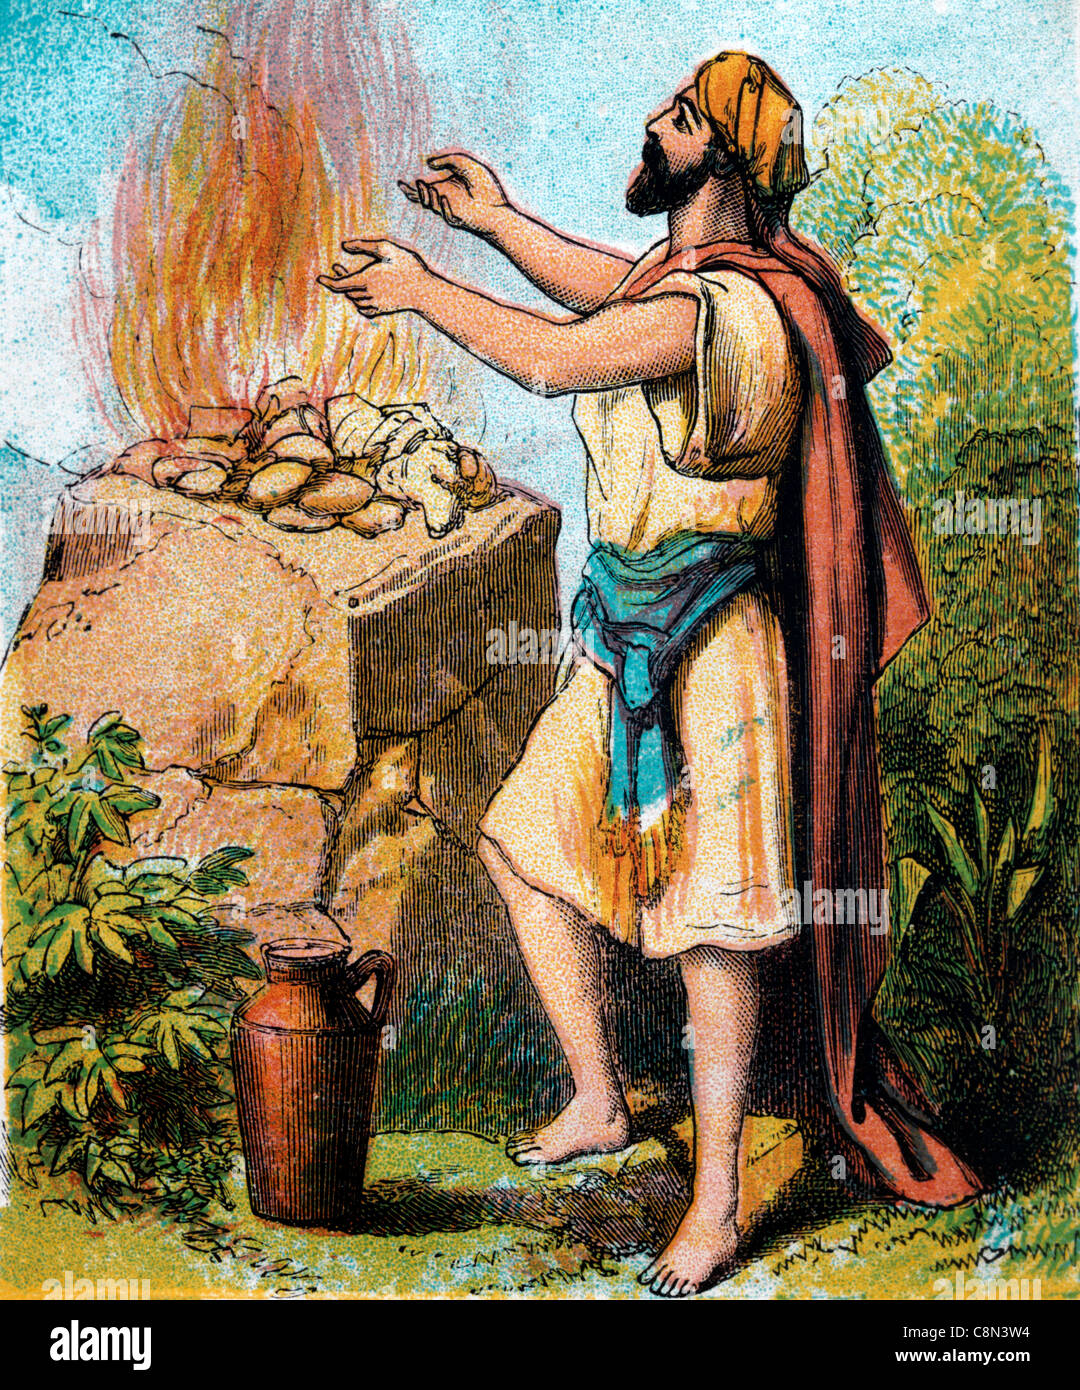 Bible Stories- Illustration Of Gideon With The Flesh And The Unleavened Bread On A Rock - Stock Image